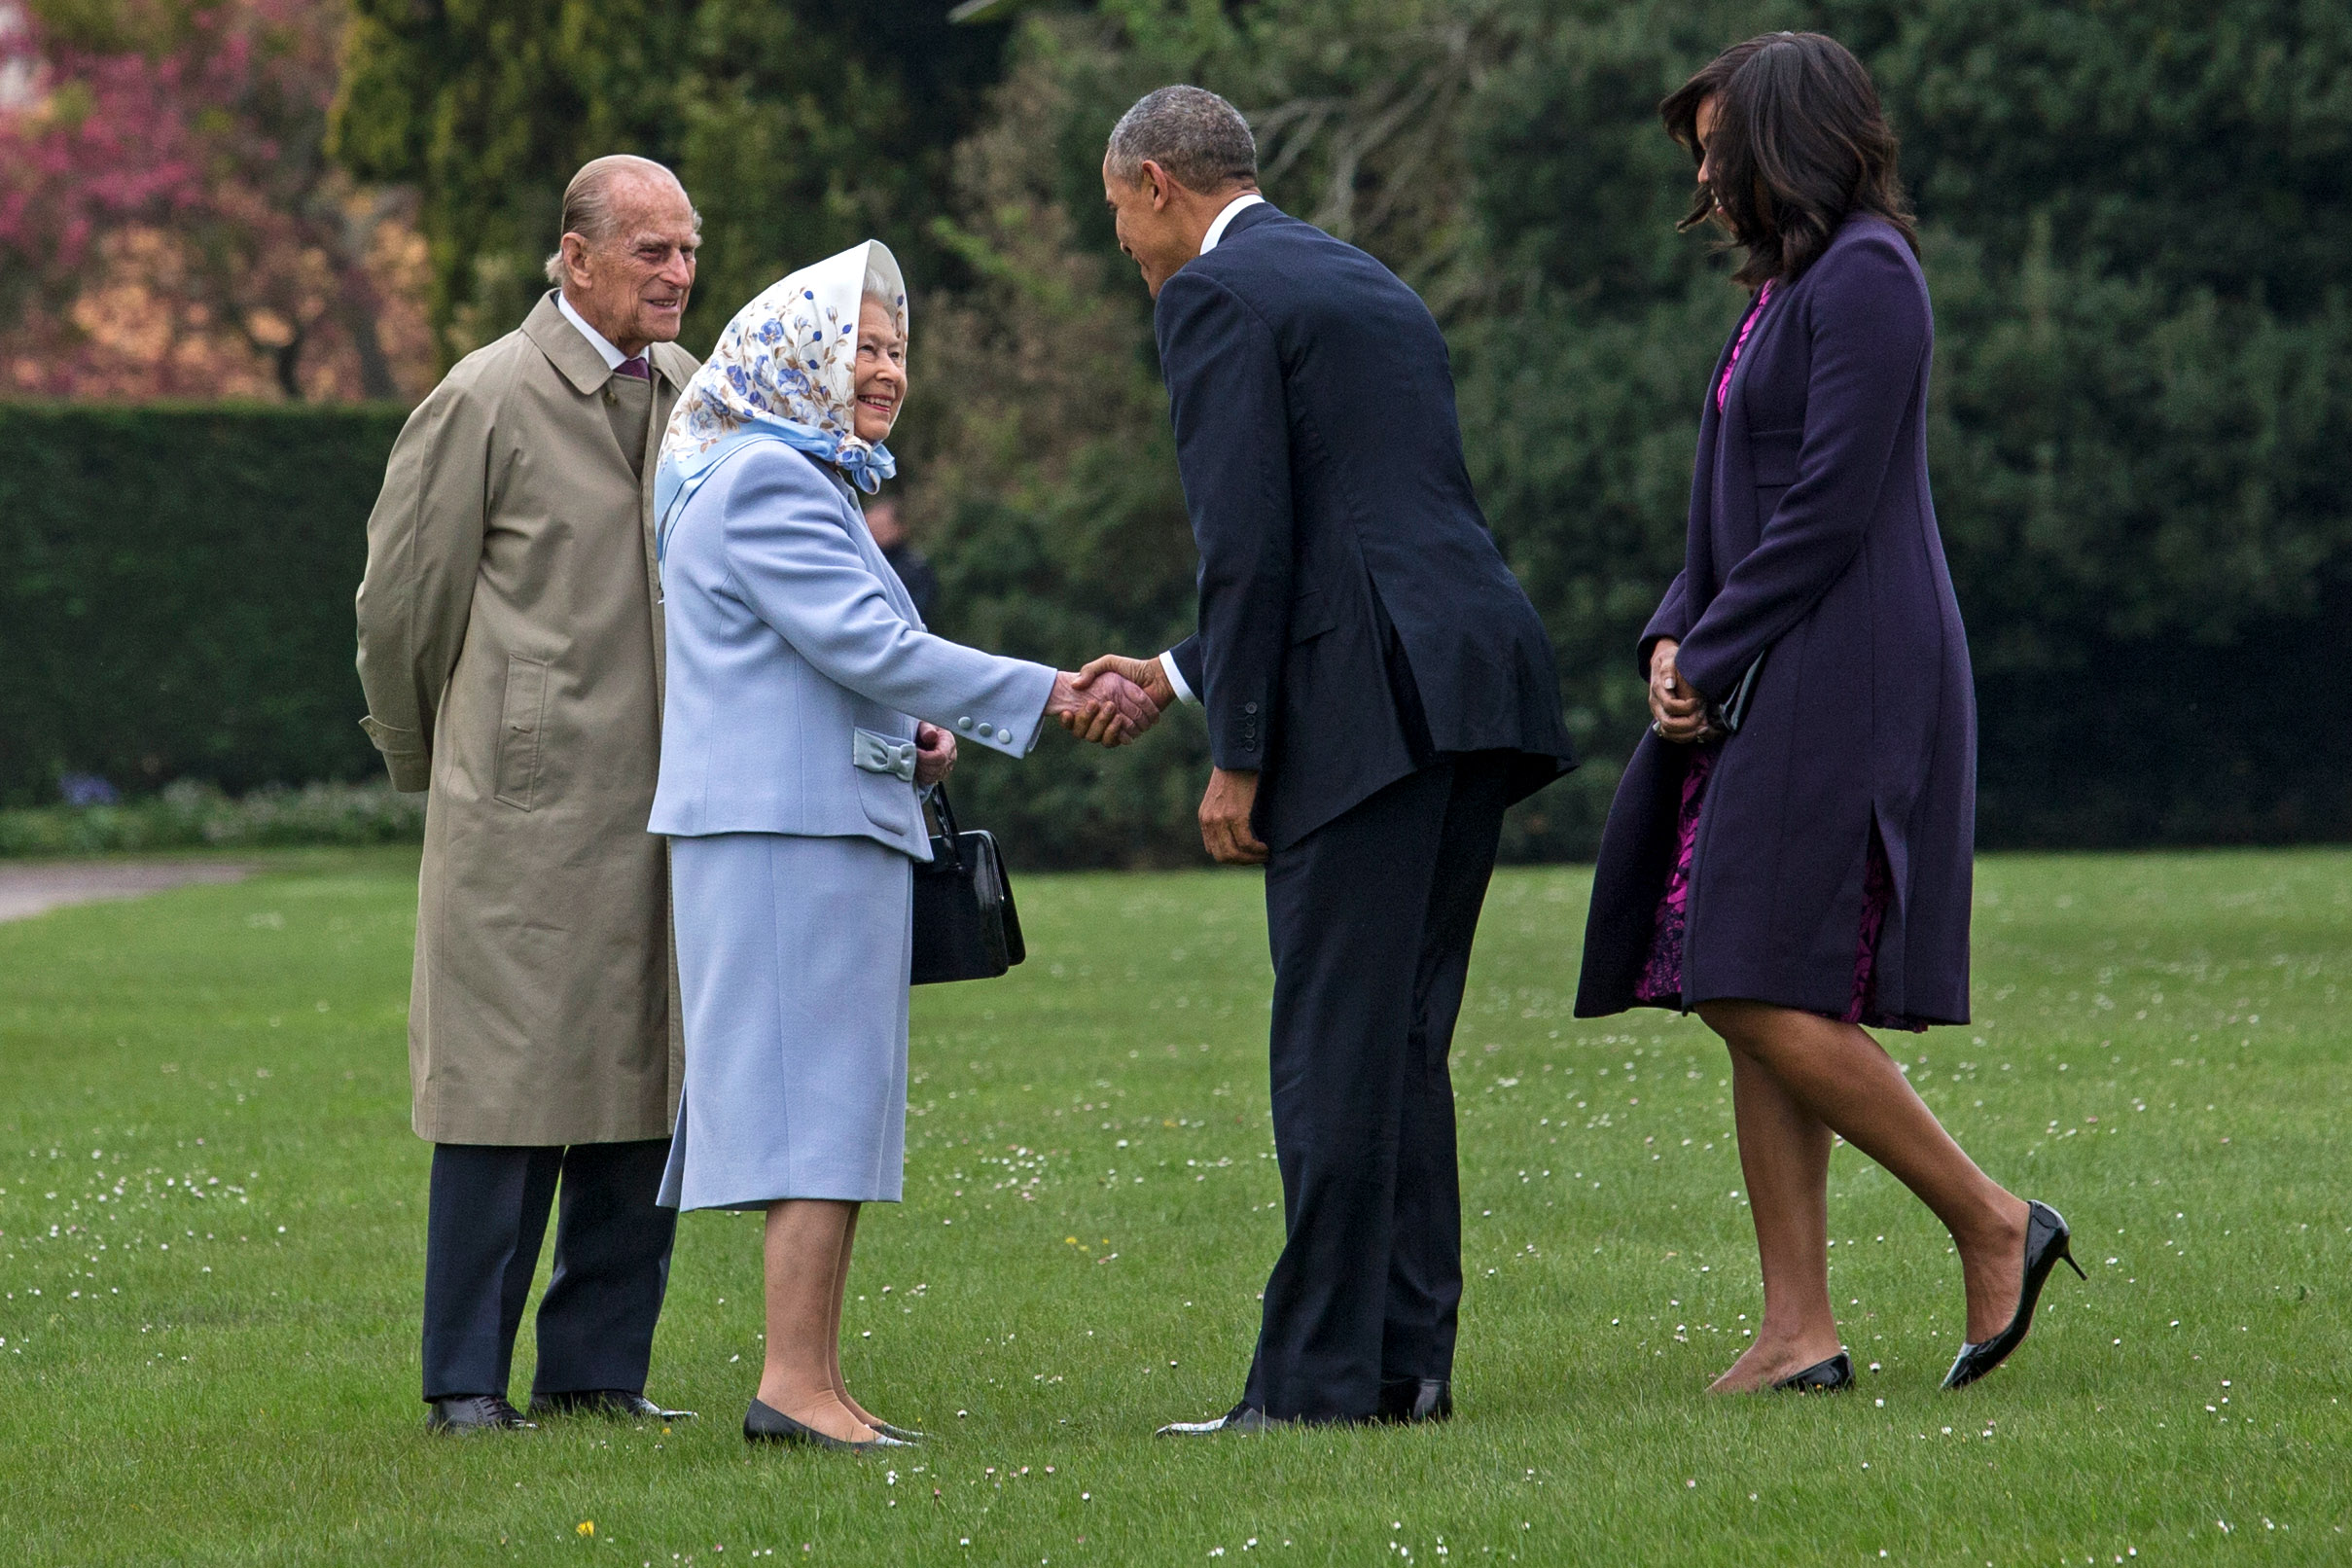 US President Barack Obama and his wife First Lady Michelle Obama are greeted by Queen Elizabeth II and Prince Phillip, Duke of Edinburgh after landing by helicopter at Windsor Castle for a private lunch on April 22, 2016 in Windsor, England. The President and his wife are currently on a brief visit to the UK where they will have lunch with HM Queen Elizabeth II at Windsor Castle and dinner with Prince William and his wife Catherine, Duchess of Cambridge at Kensington Palace. Mr Obama will visit 10 Downing Street on Friday afternoon where he is to hold a joint press conference with British Prime Minister David Cameron and is expected to make his case for the UK to remain inside the European Union.